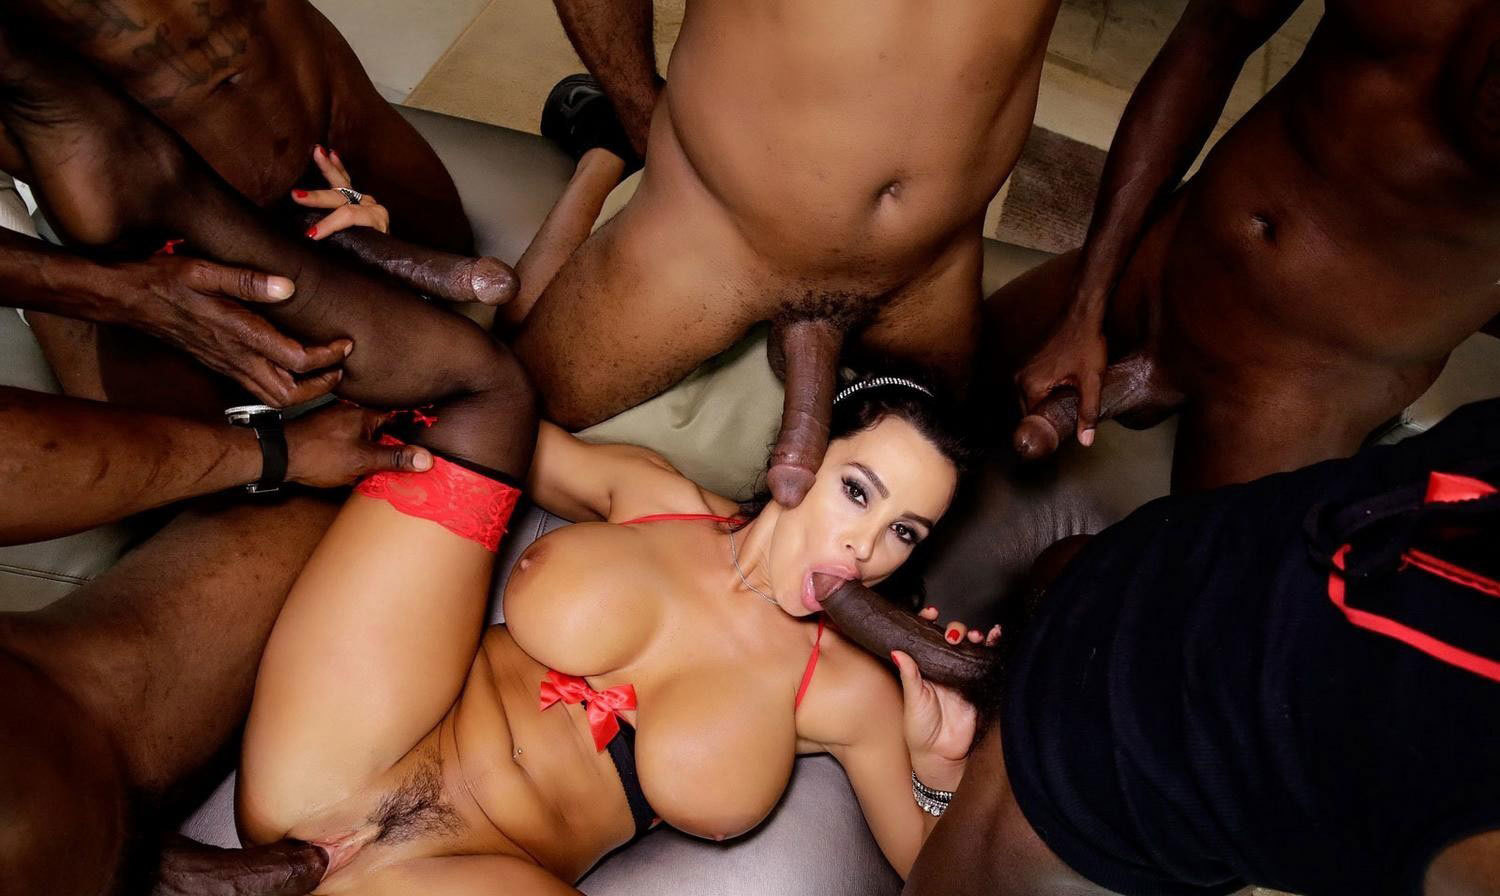 worlds-biggest-gang-bang-video-dahlia-dark-fucking-pictures